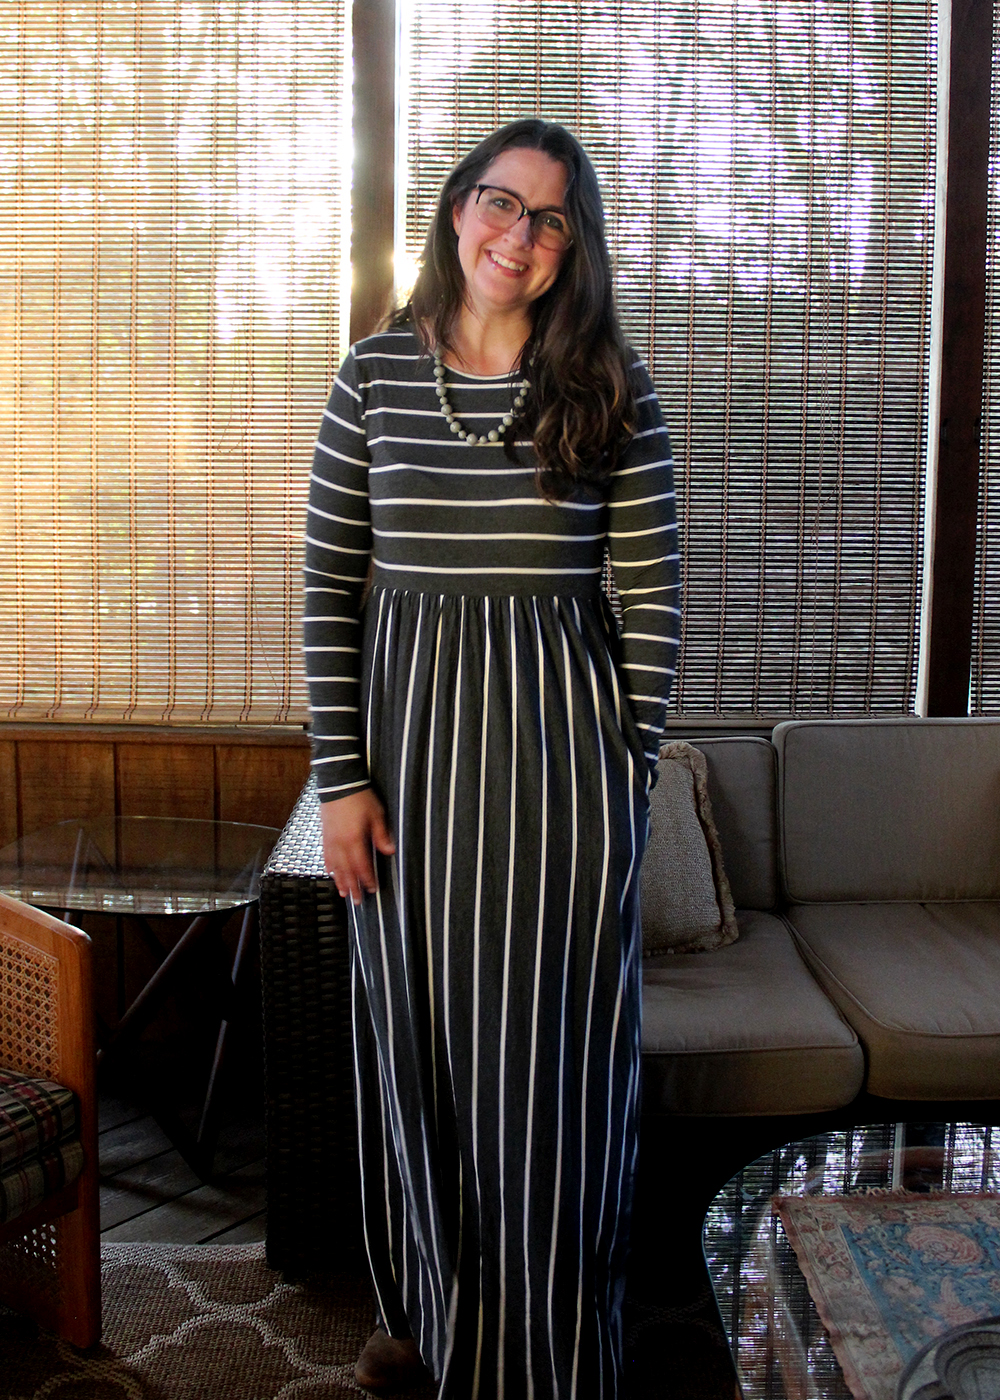 Striped Maxi Dress for under $25. Fall fashion ideas